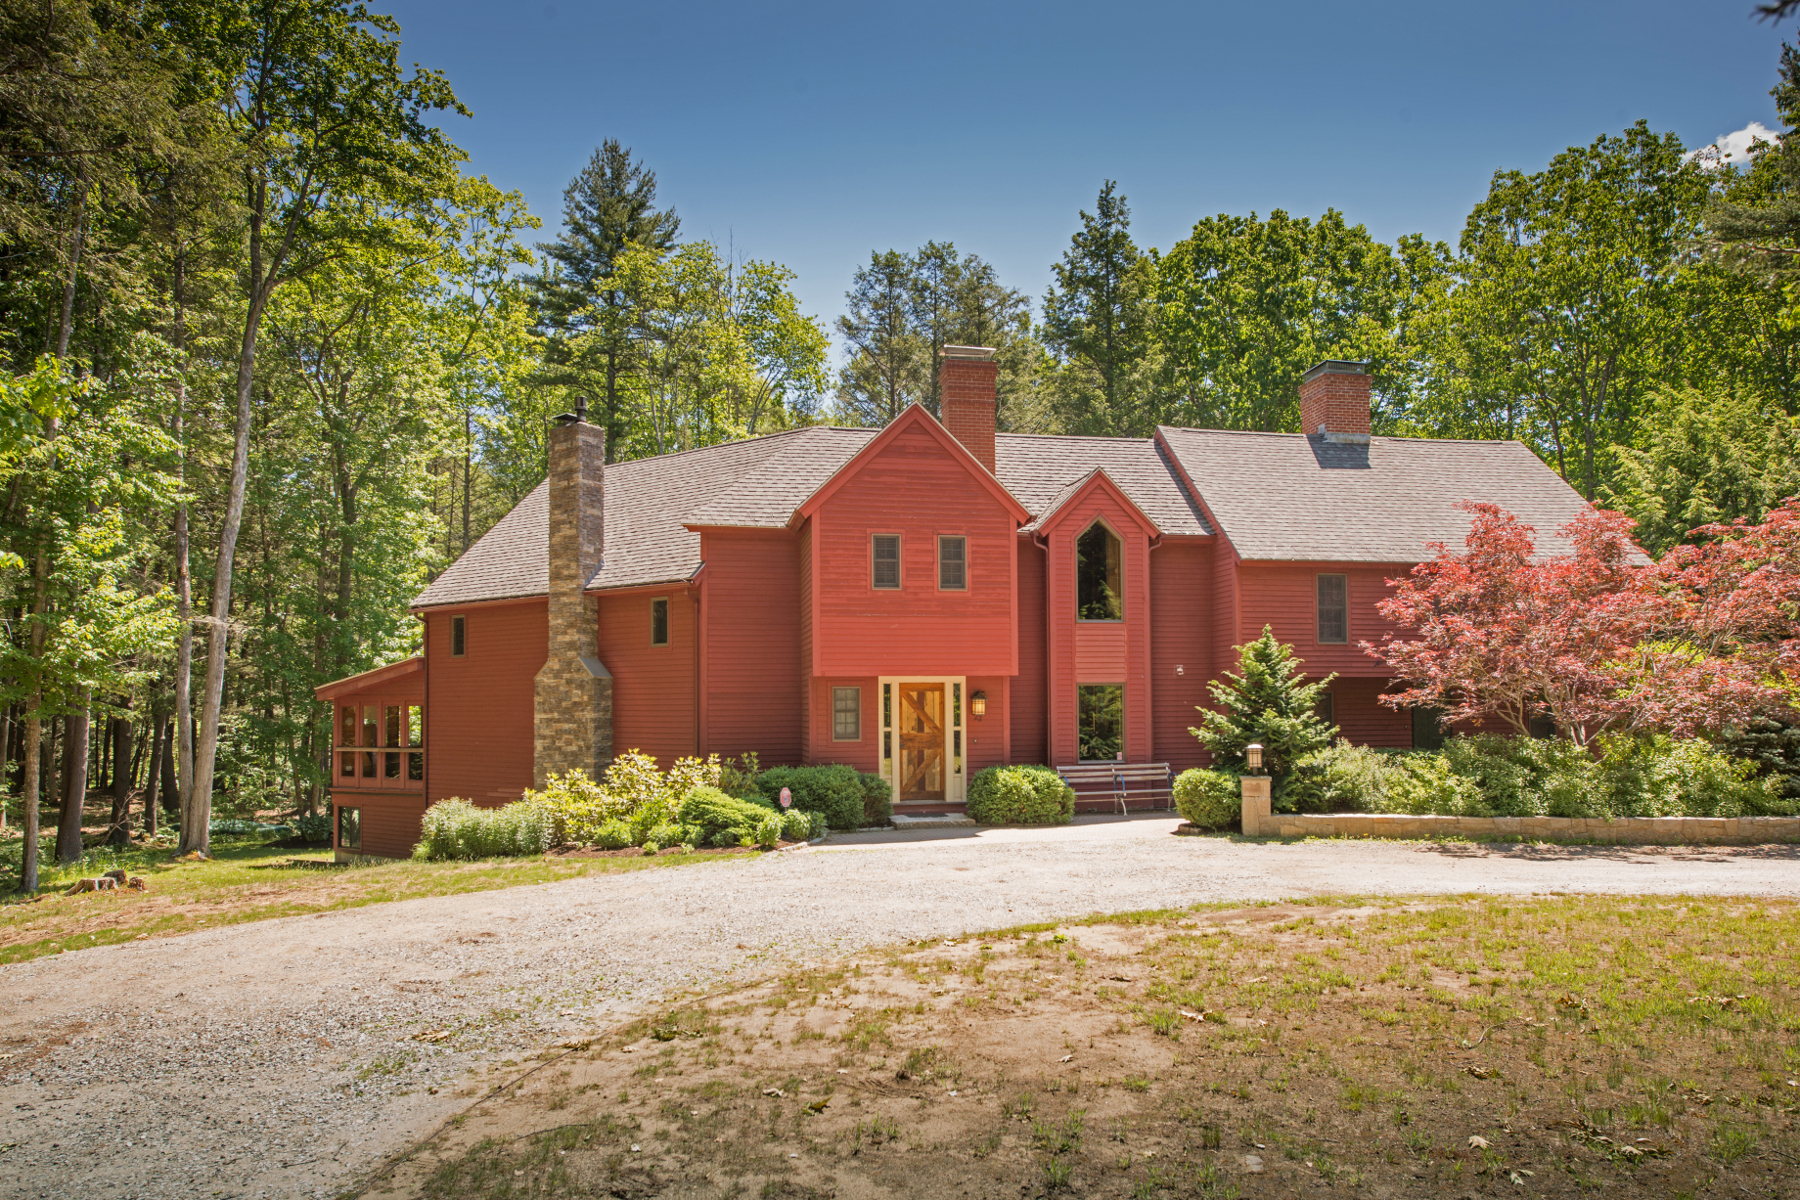 Single Family Home for Sale at Contemporary Colonial in Ogunquit 22 Autumn River Lane Ogunquit, Maine, 03907 United States